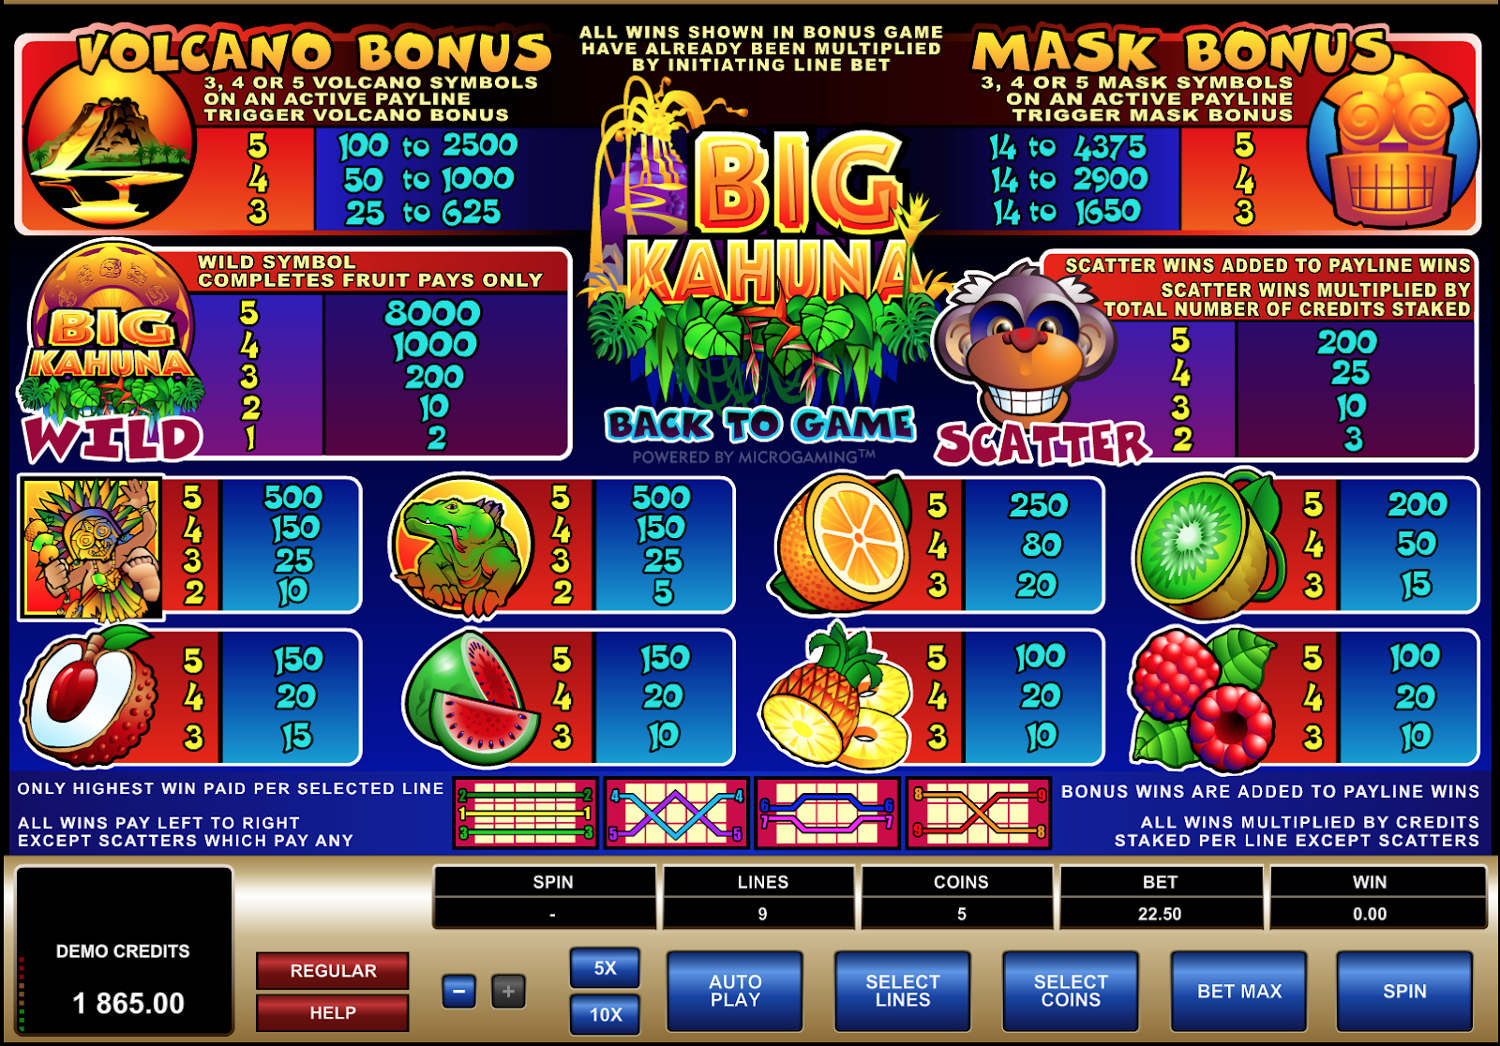 Big Kahuna Paytable